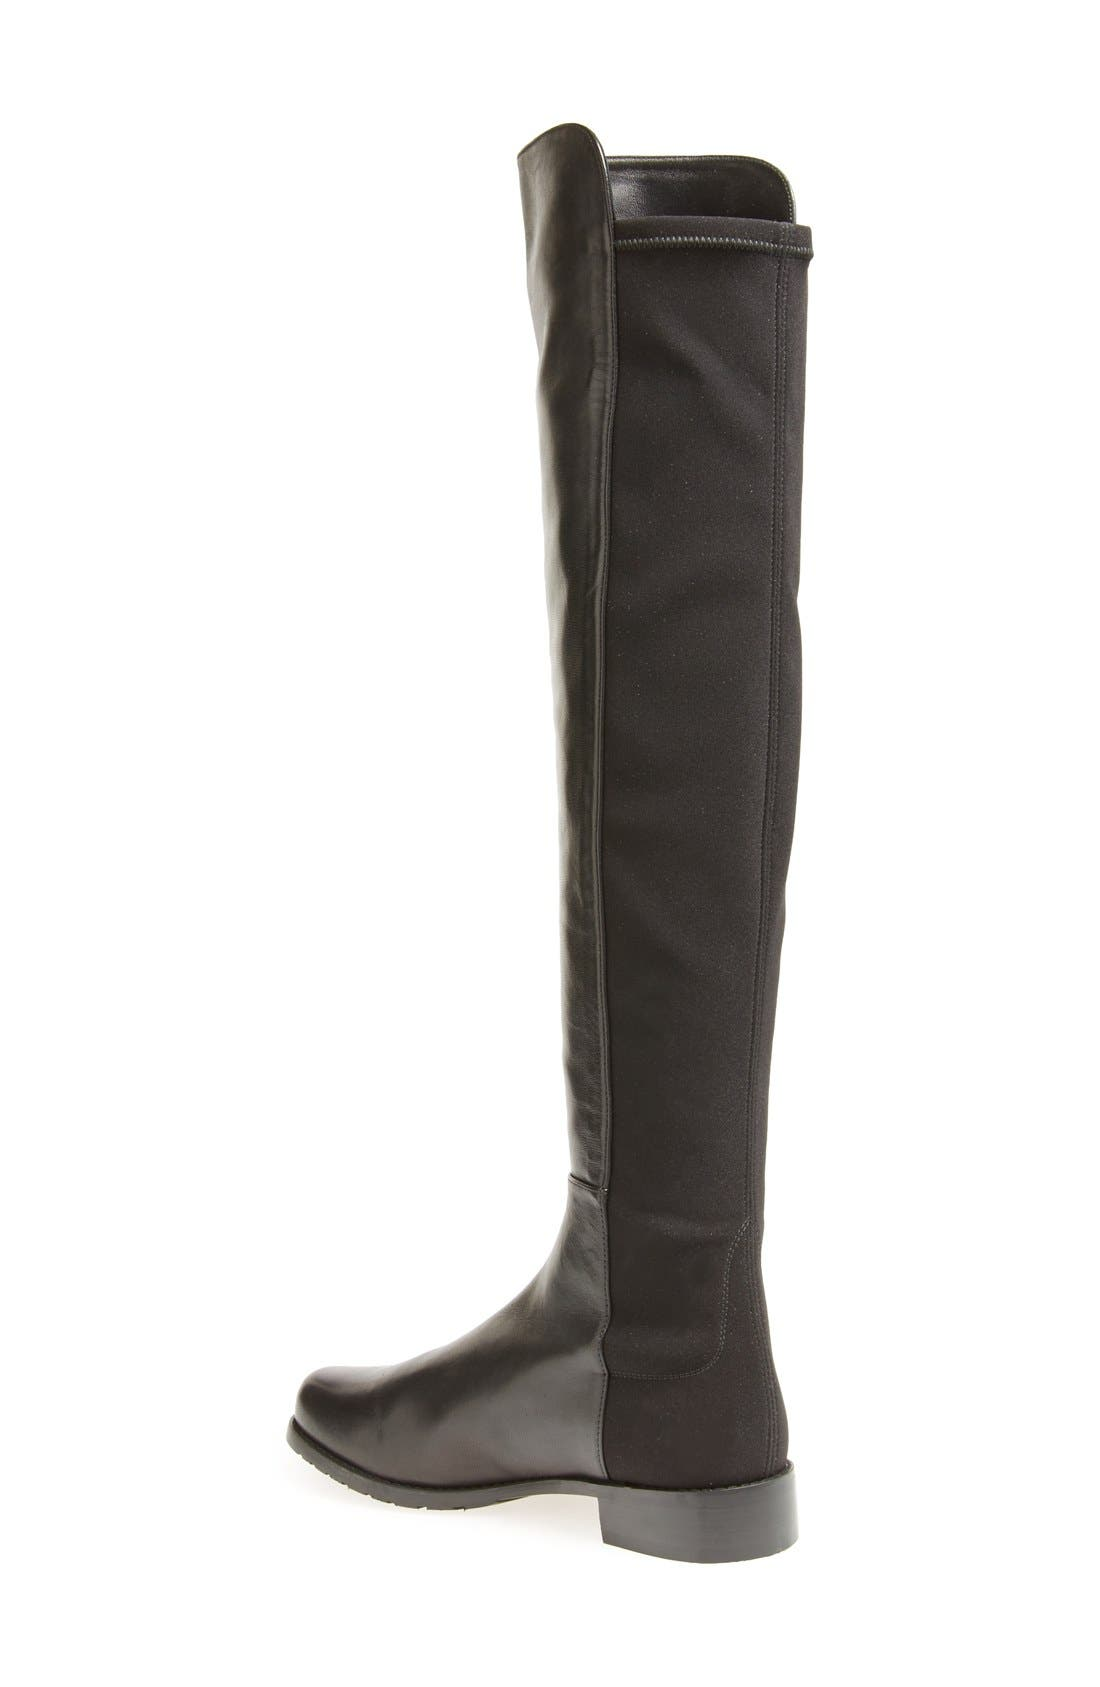 5050 Over the Knee Leather Boot,                             Alternate thumbnail 3, color,                             BLACK NAPPA